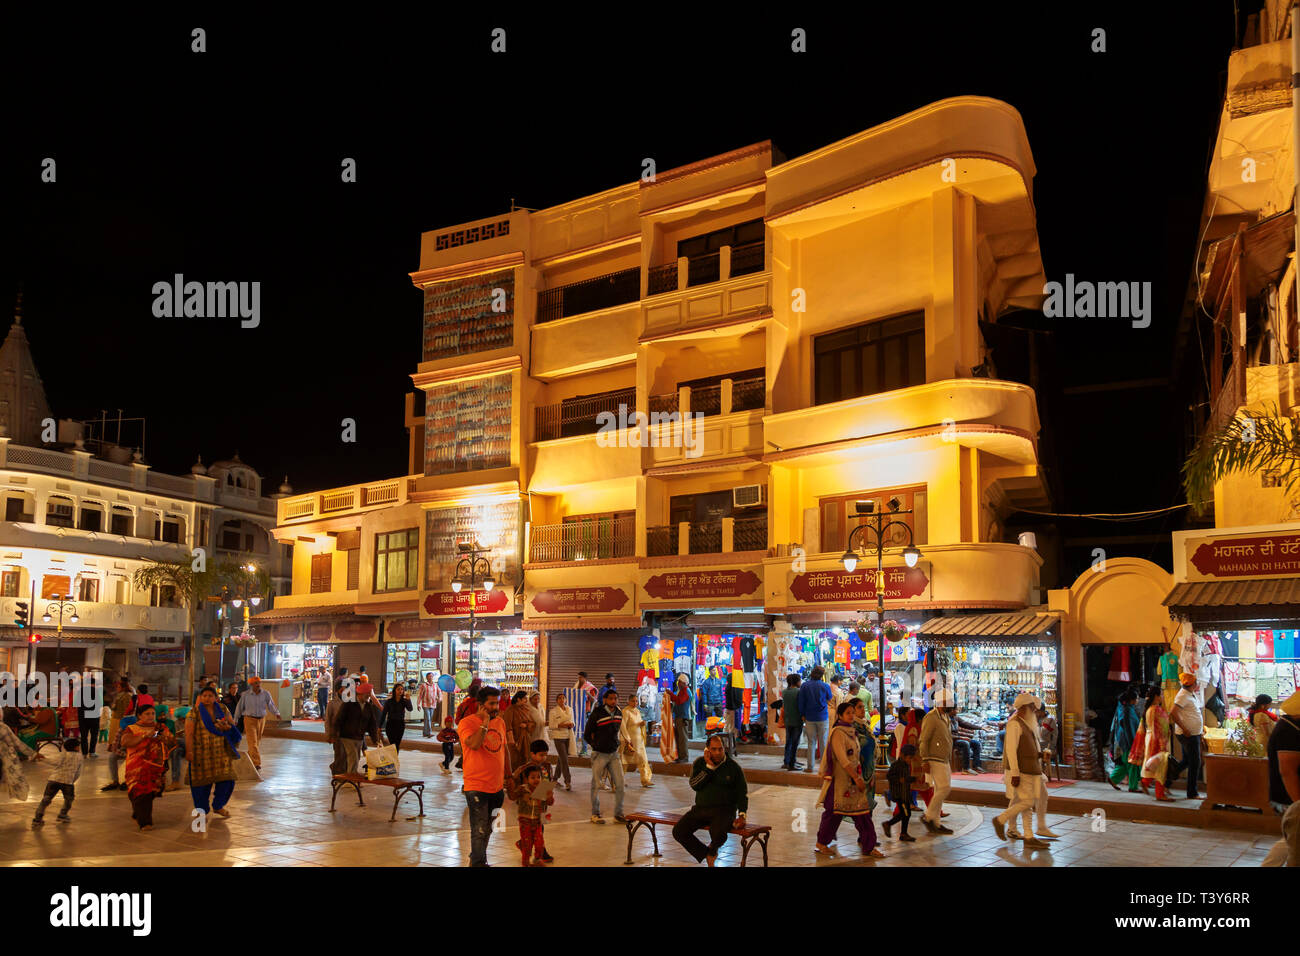 Local people out at night enjoying the bustling pedestrianised shopping area of downtown Amritsar town centre in the evening, Punjab, India - Stock Image